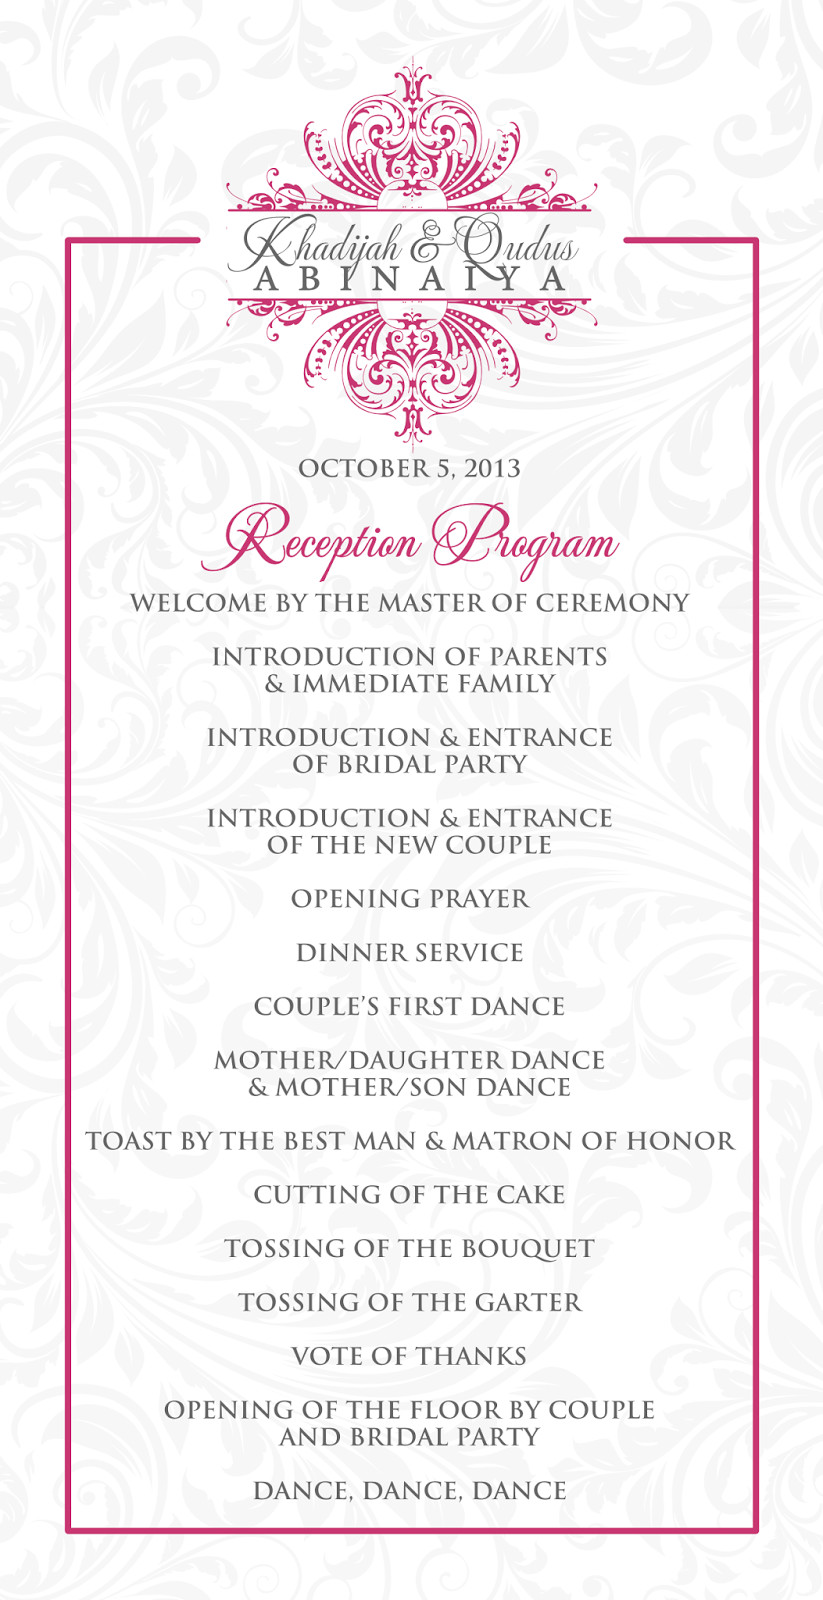 Wedding Reception Program Template Signatures by Sarah Wedding Stationery for Khadijah